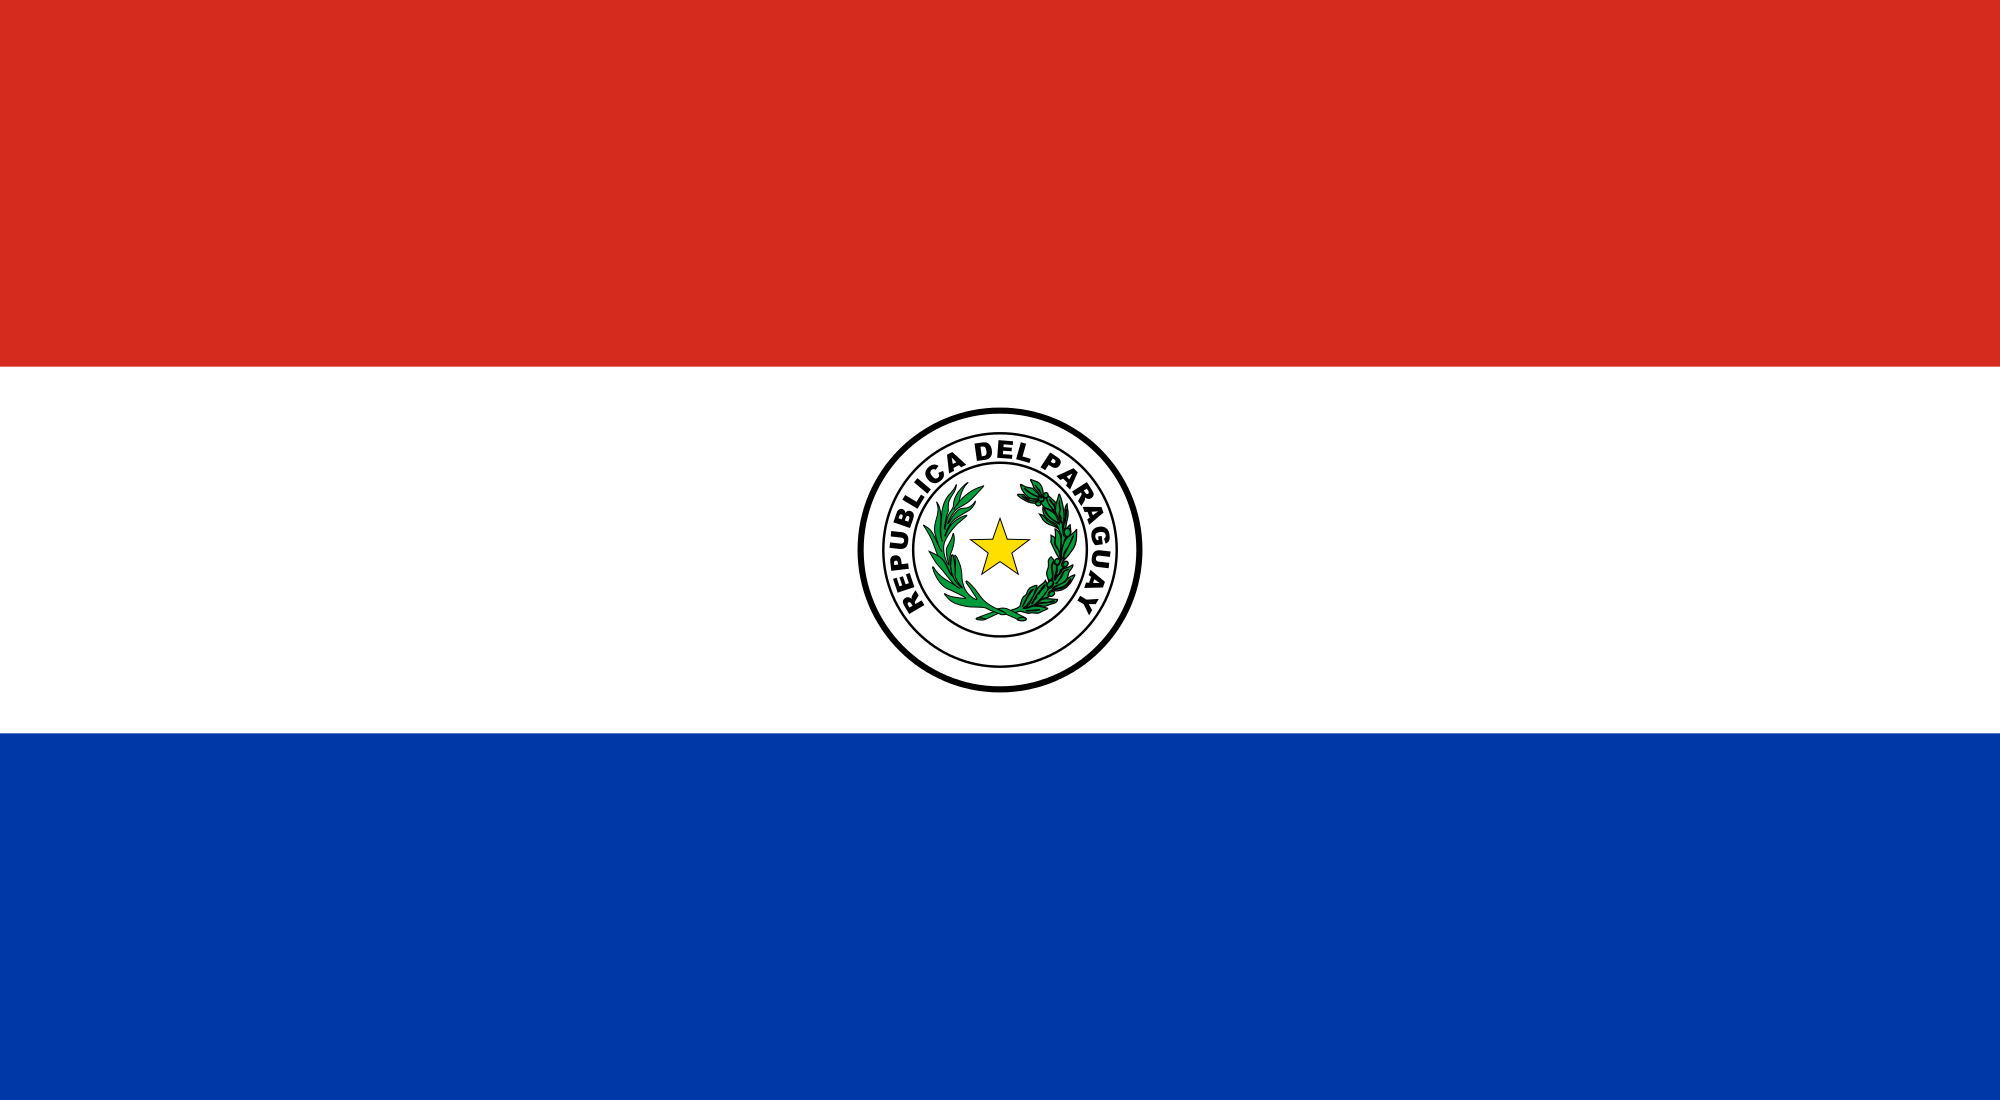 EMBASSY AND CONSULATE OF PARAGUAY